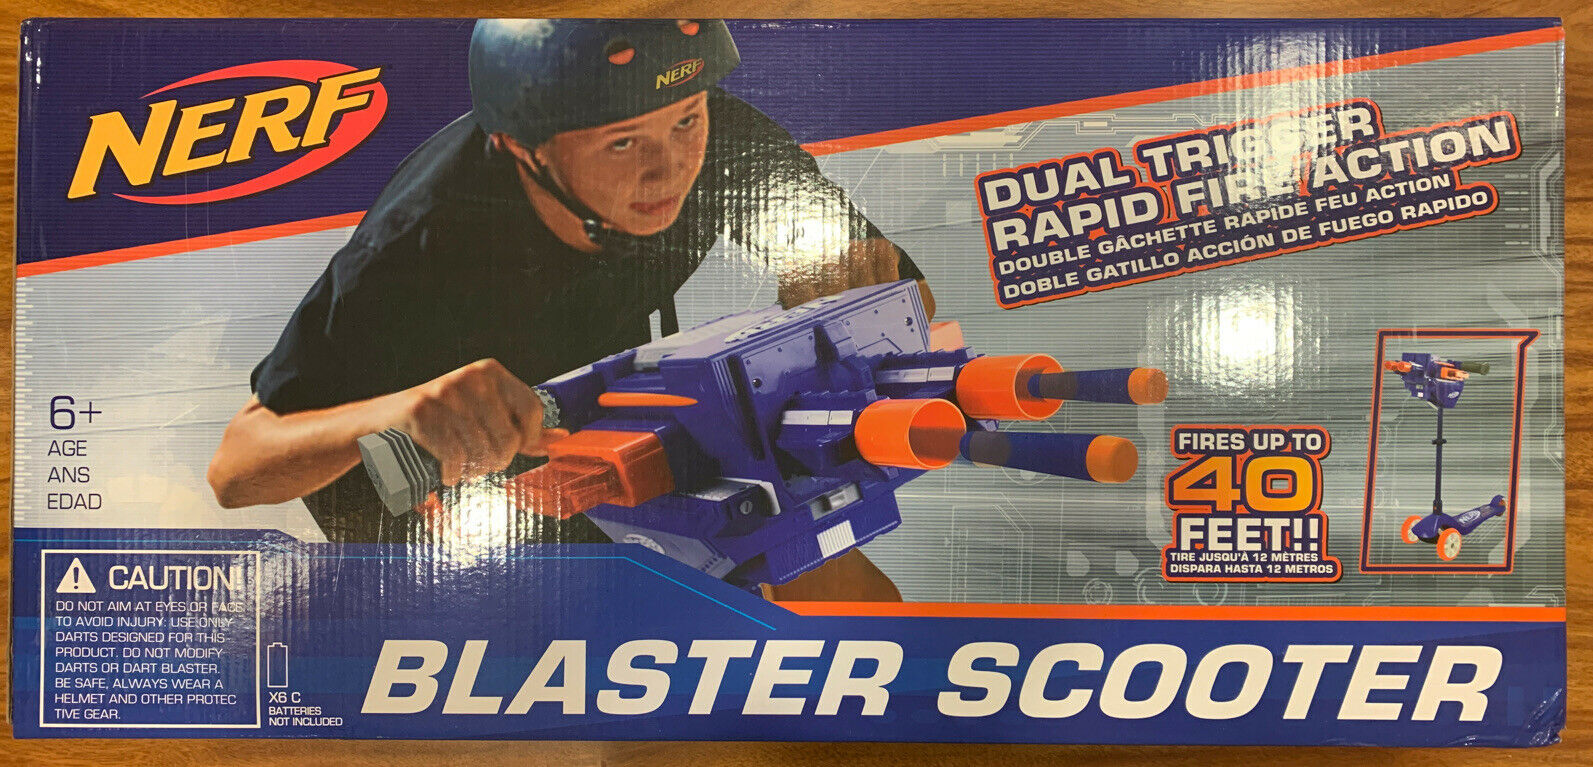 NERF Blaster Scooter Dual Trigger 3 Wheel Kick Scooter